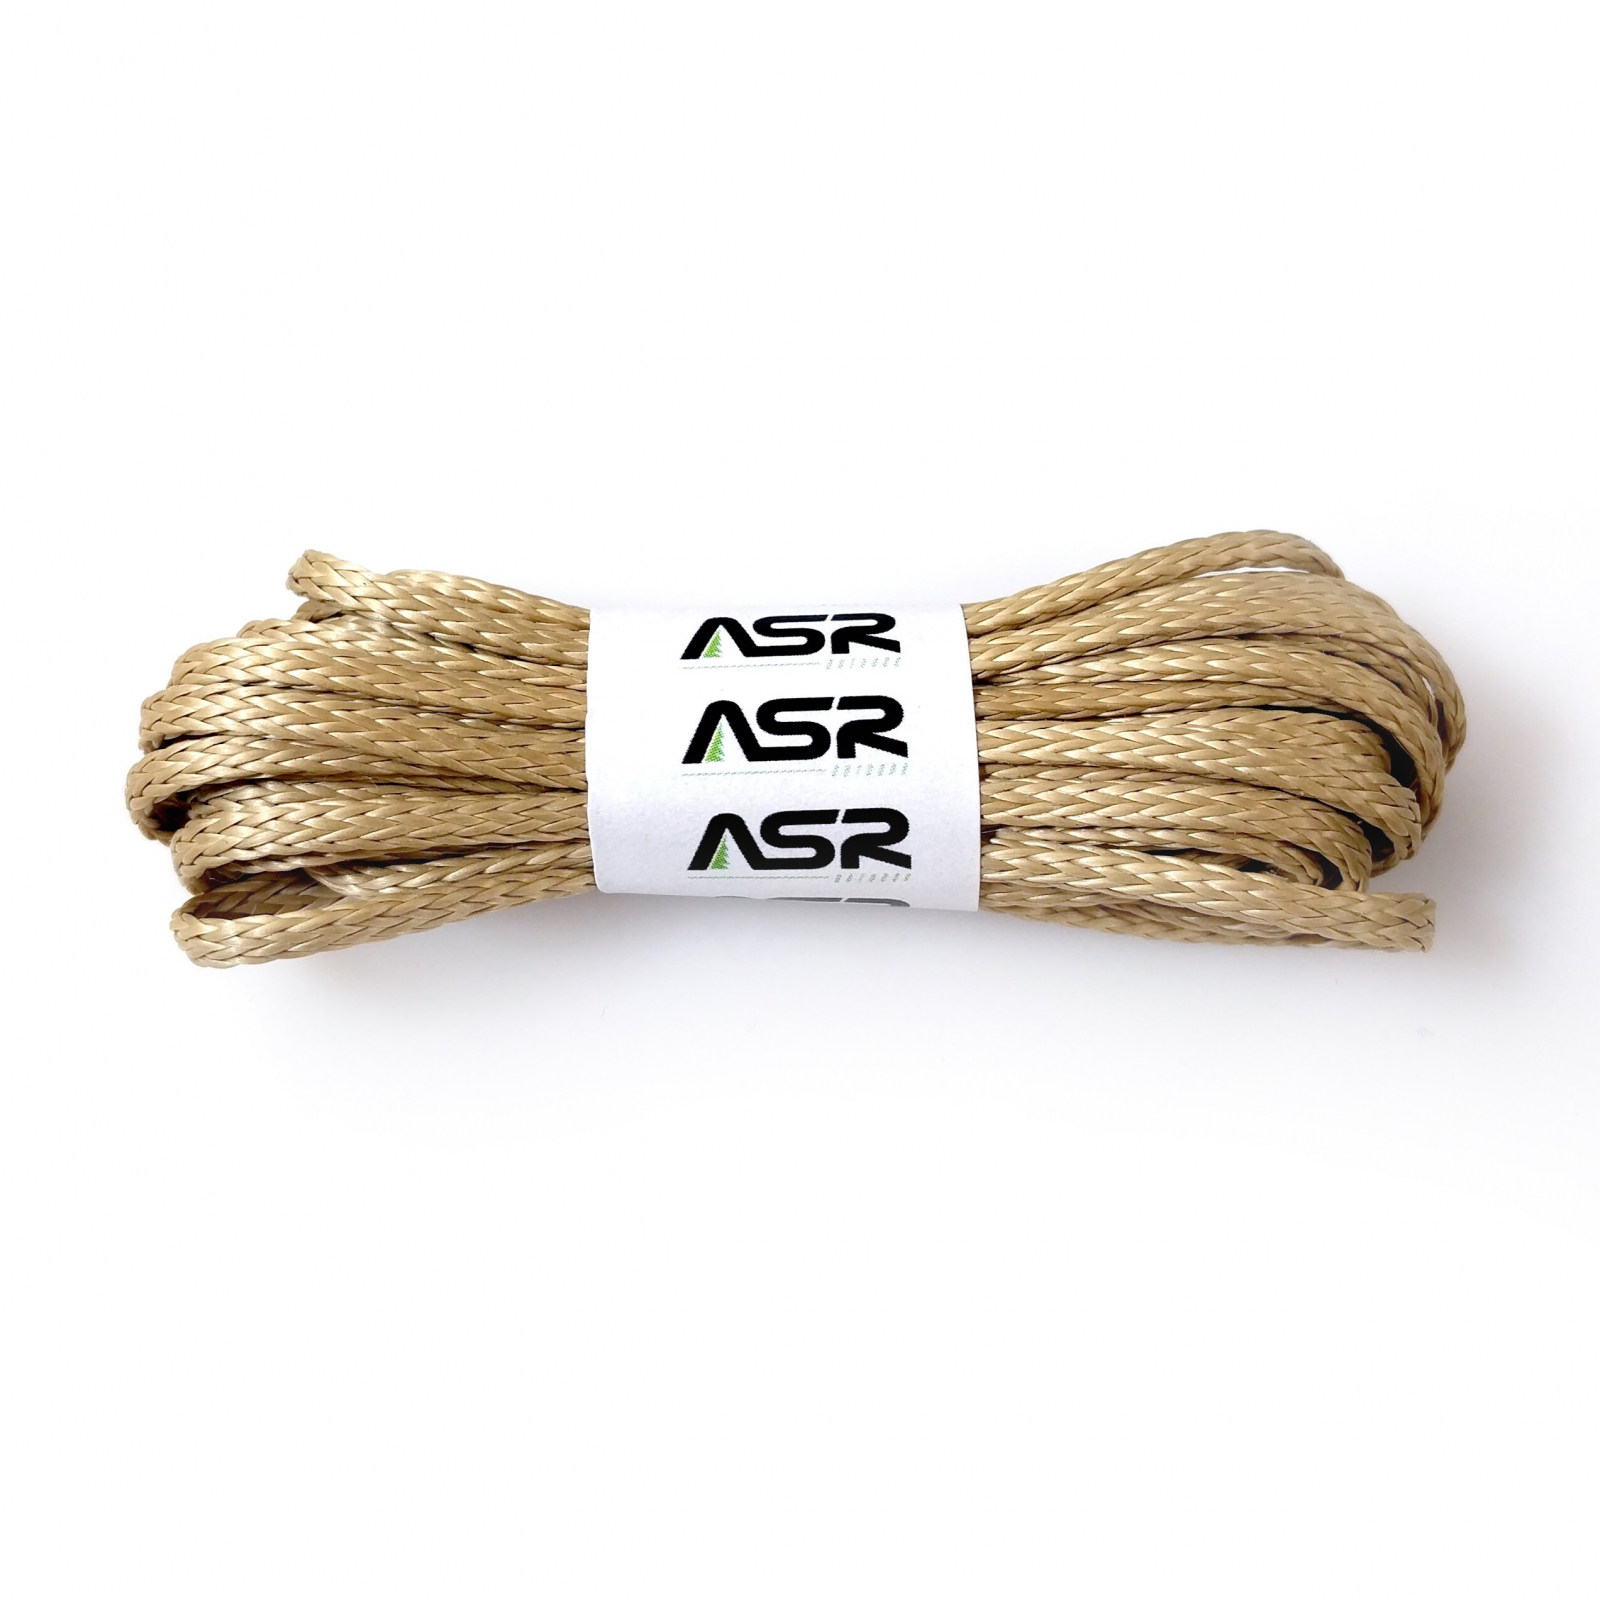 ASR-Outdoor-Braided-Technora-950lb-Survival-Rope-Natural-Many-Lengths thumbnail 8